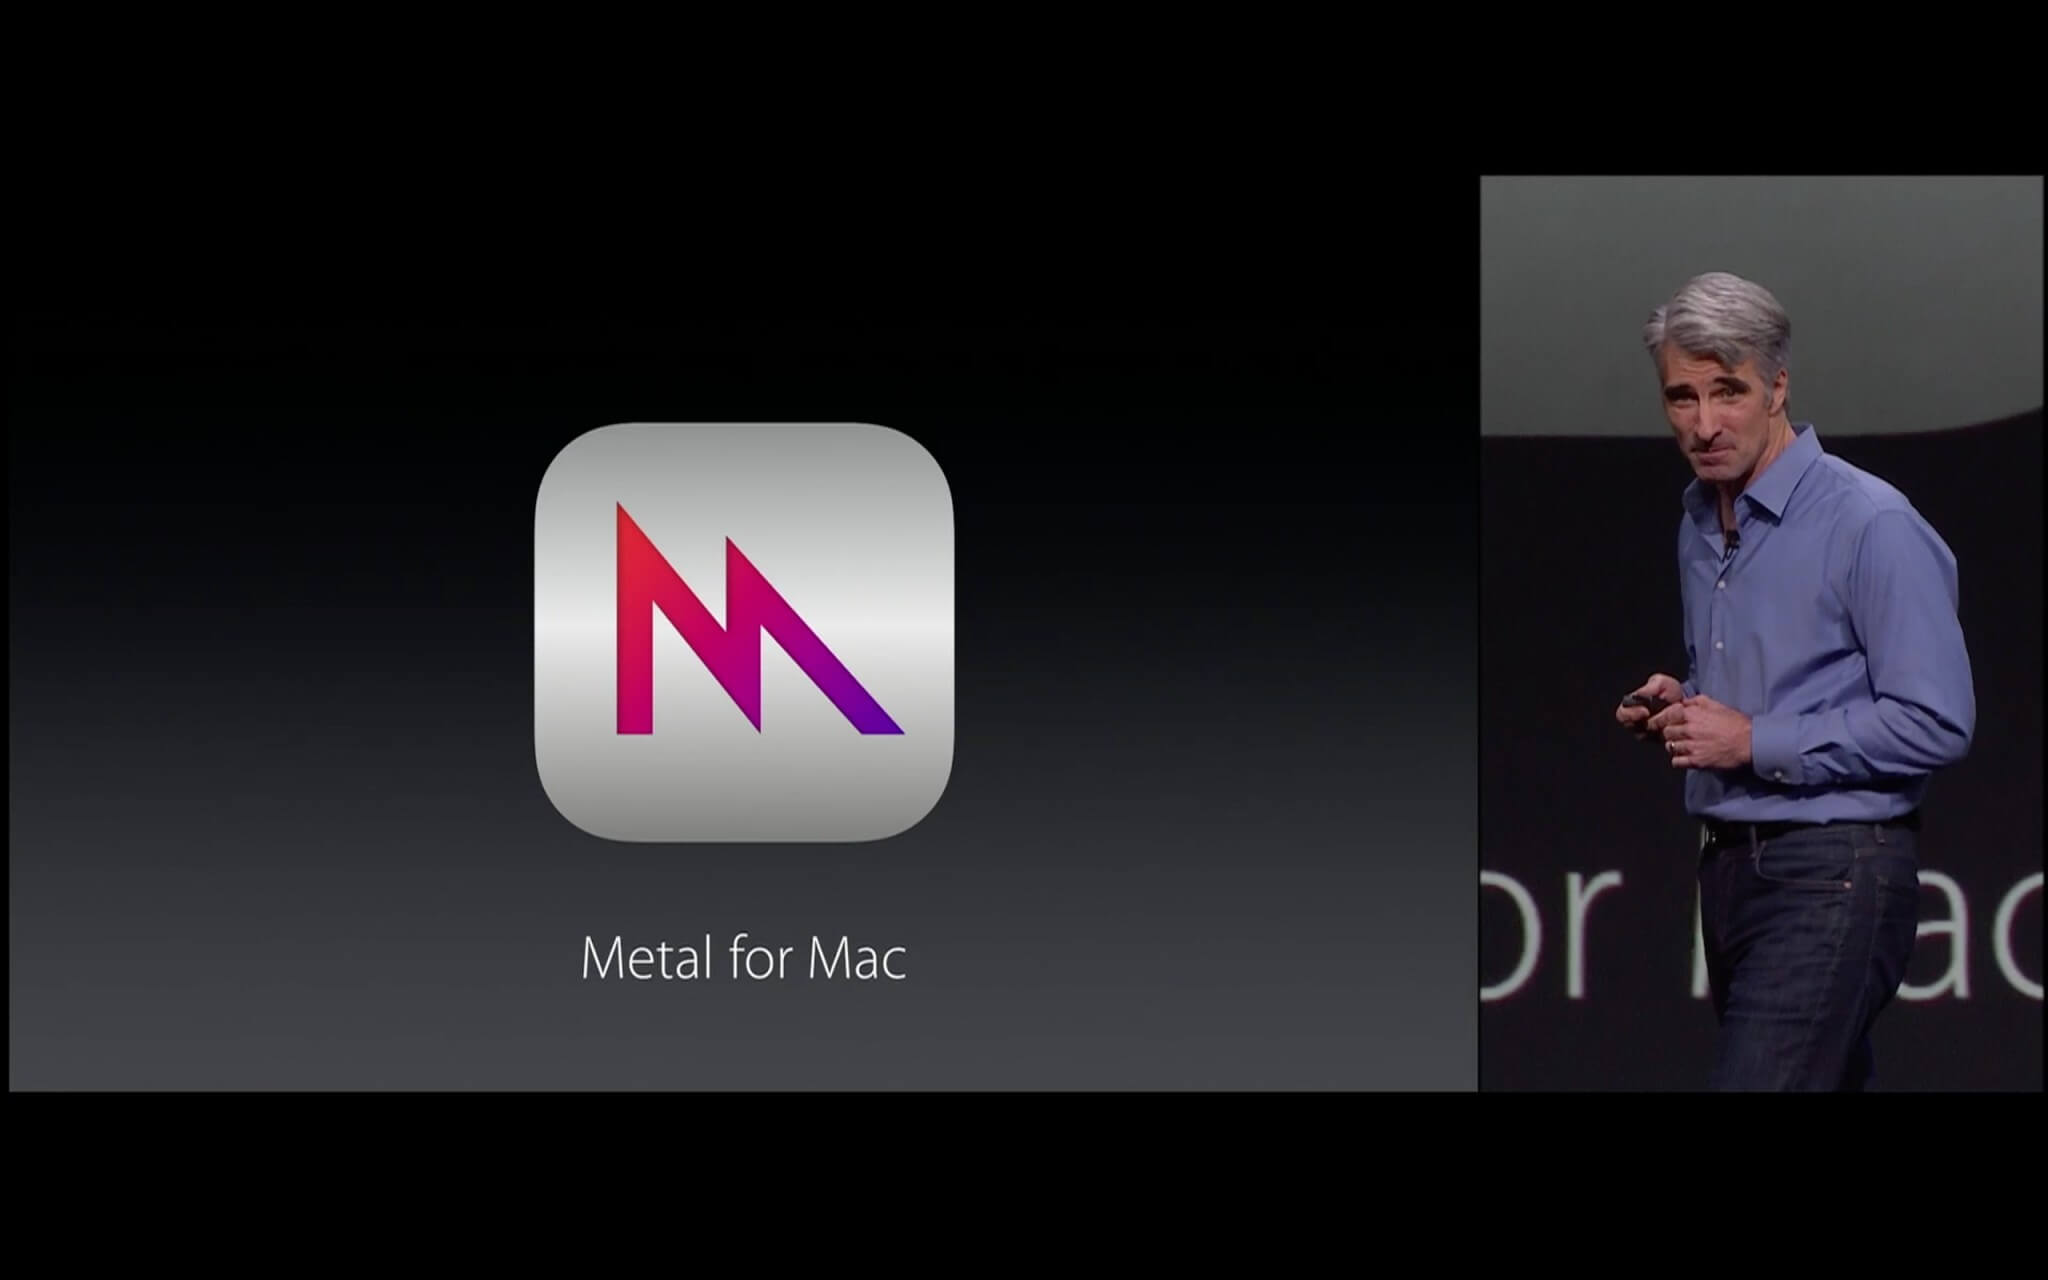 Metal for Mac (Bildrechte: Apple)